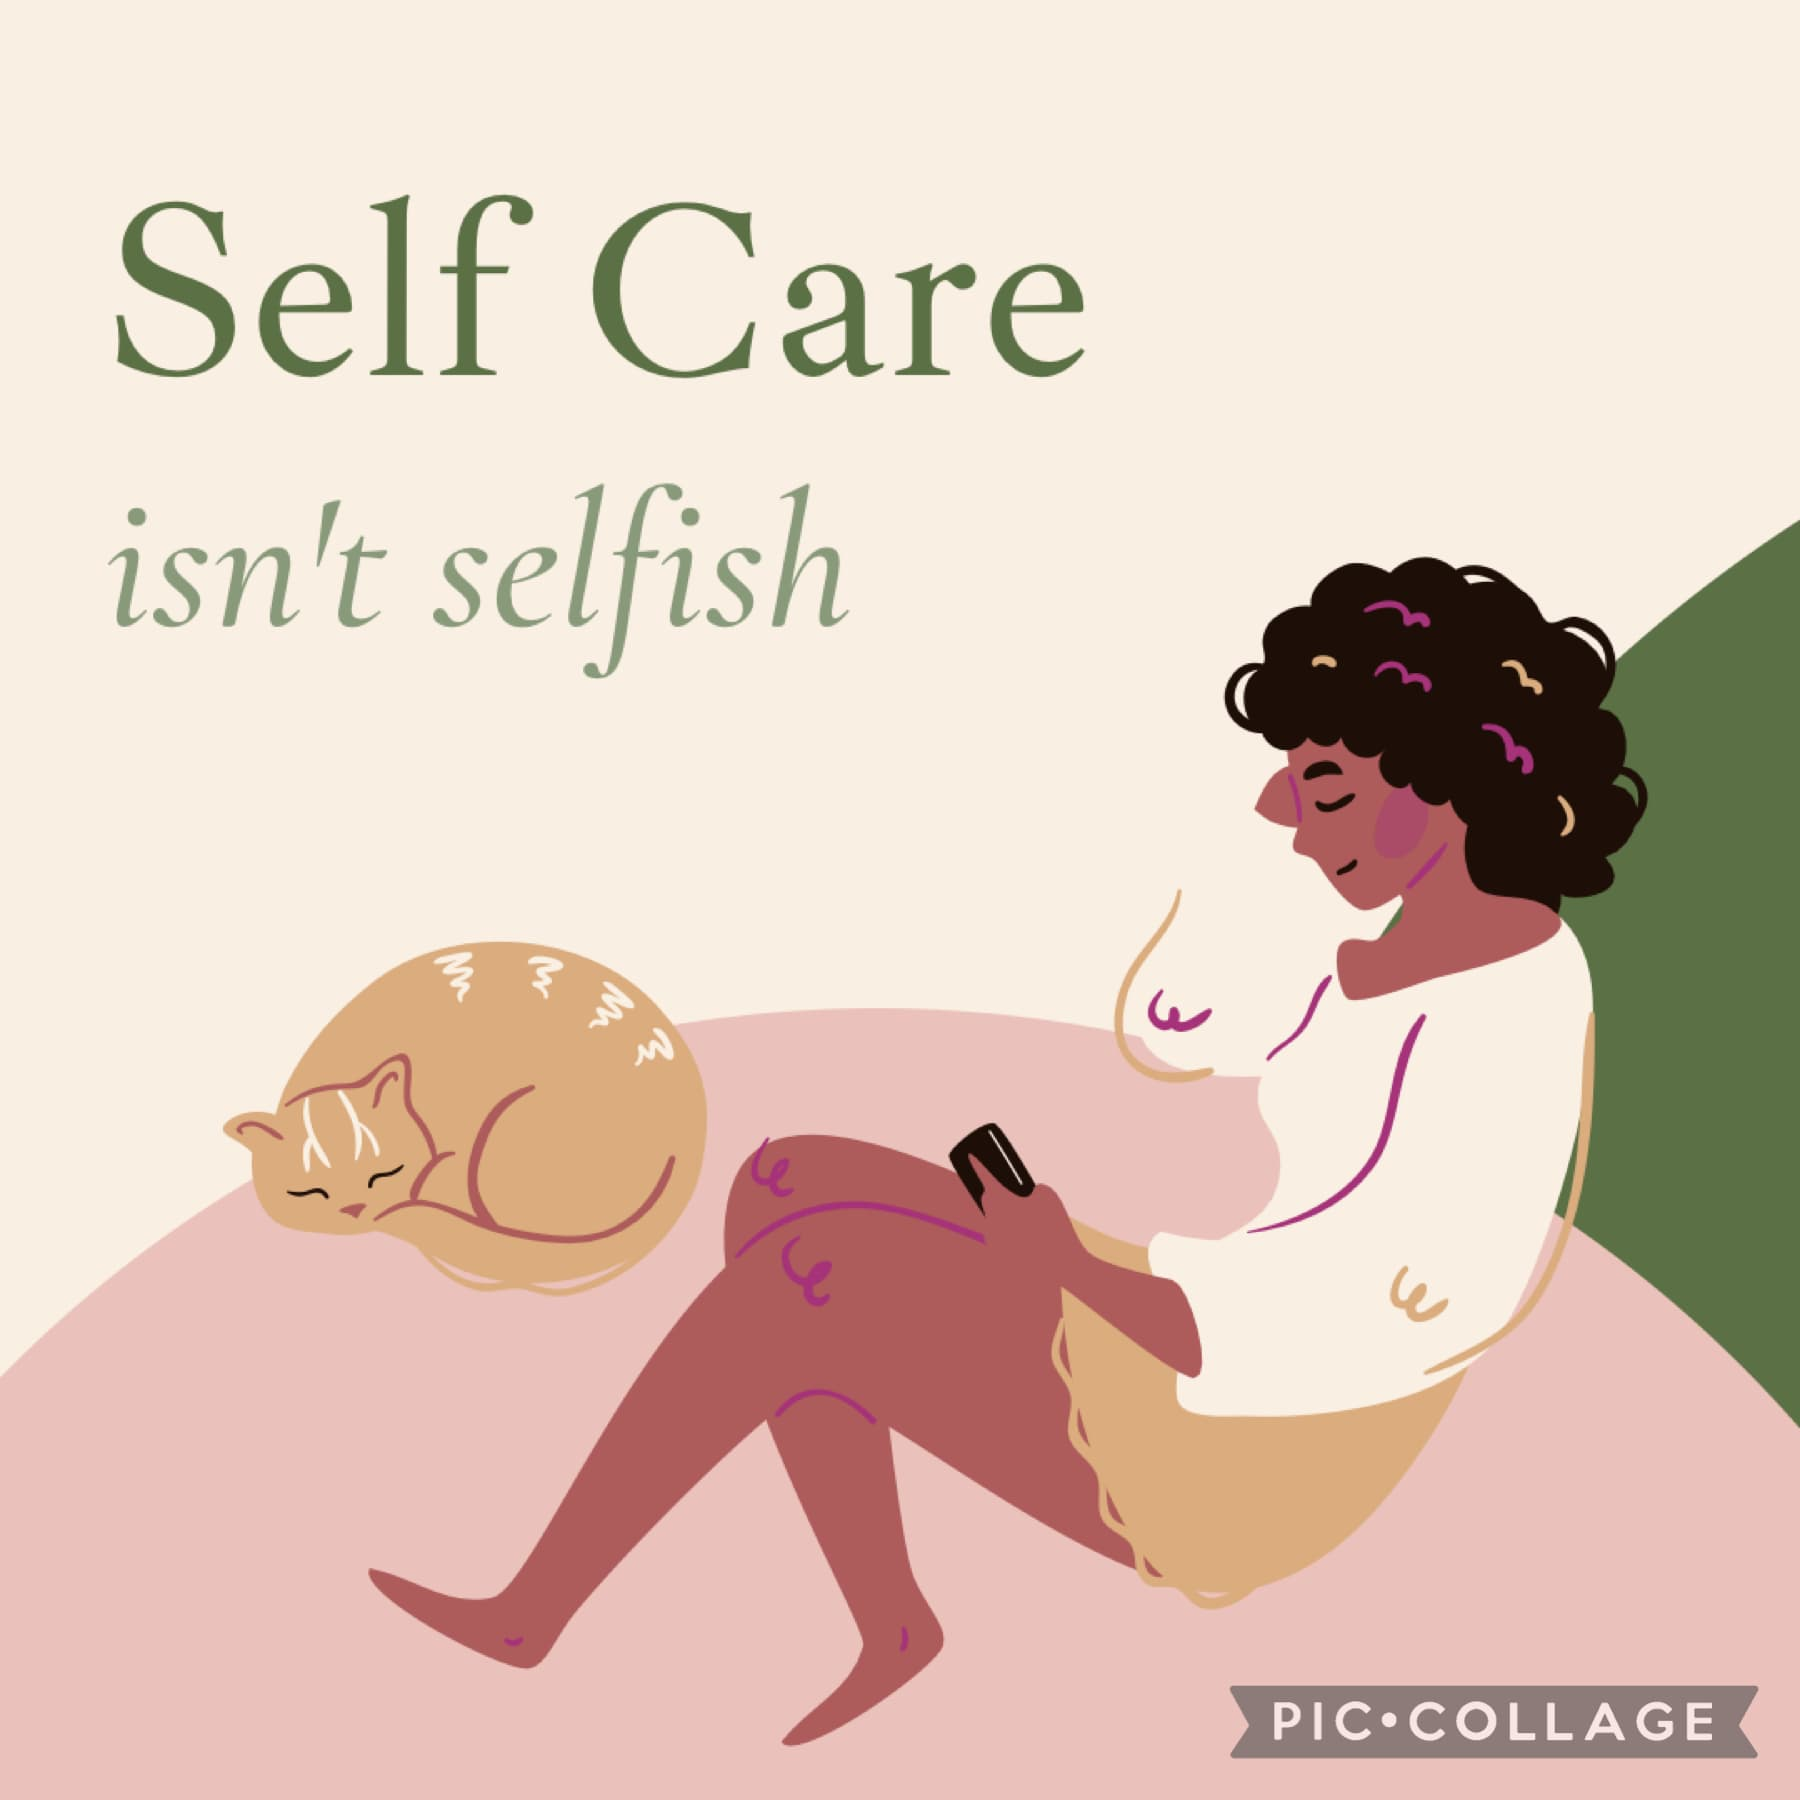 self care isn't selfish 💗  mental health check-in: how are you doing? what, if anything, are you feeling stressed about today?  reward yourself today!! you deserve it <3 template: canva